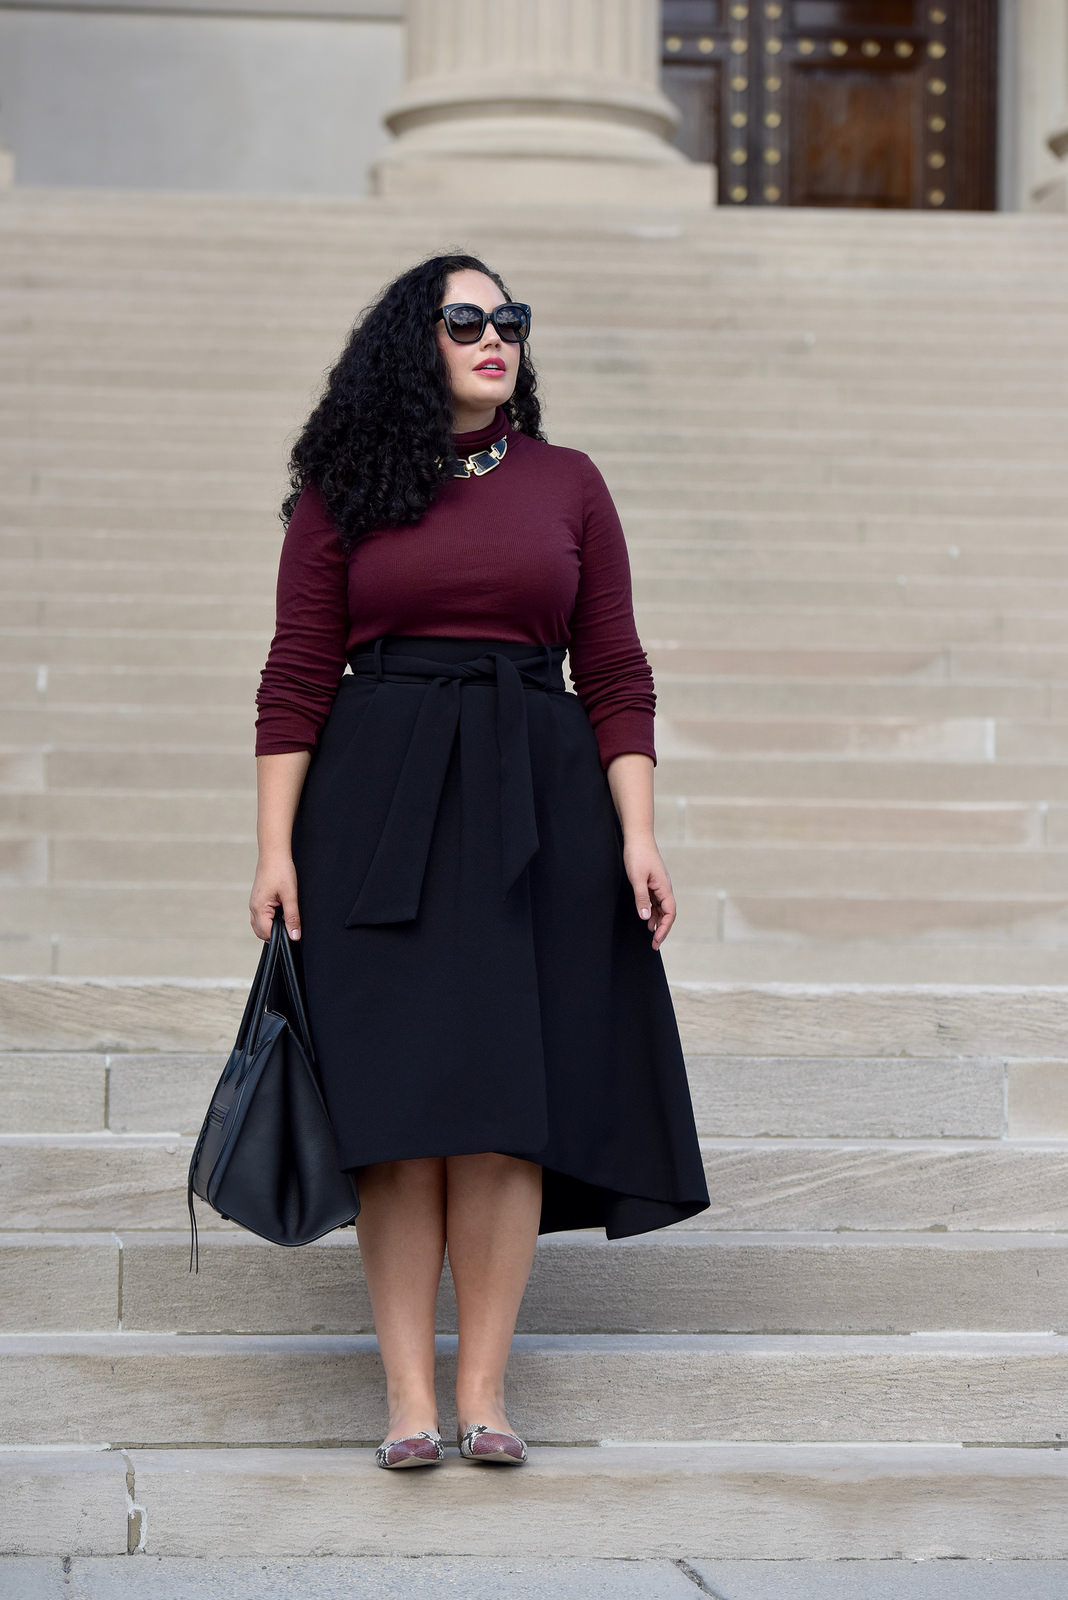 Burgundy Turtleneck, Waist Tie Midi Skirt, Snake print flats and Celine Phantom worn by Tanesha Awasthi, founder of Girl With Curves